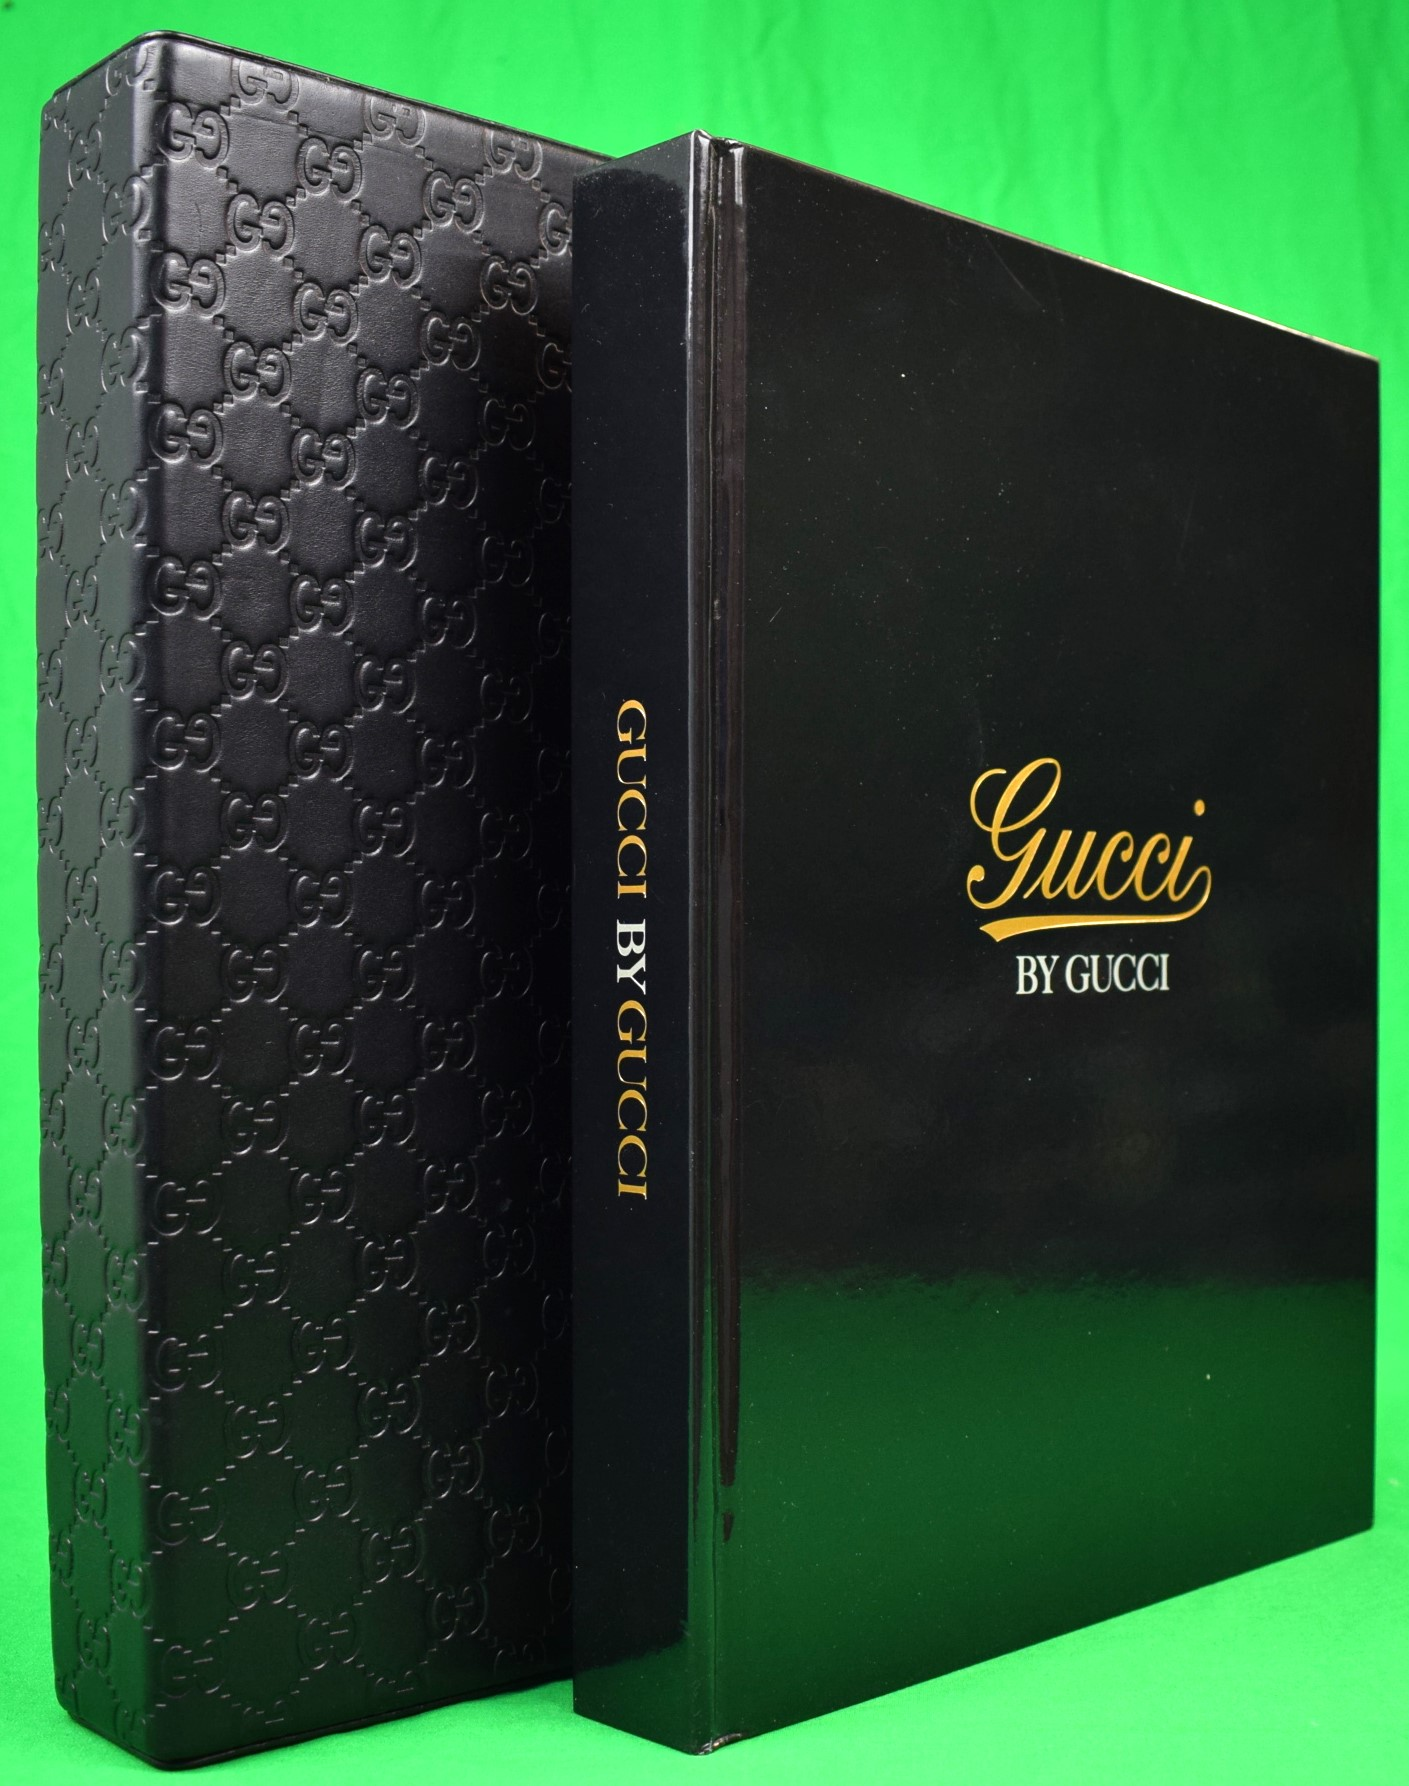 Gucci by Gucci Sarah Mower Glamorous deluxe edition ensconced in Gucciisma quilted leather slipcase & tobacco chamois cloth envelope housing a massive (439) pp volume on the cou